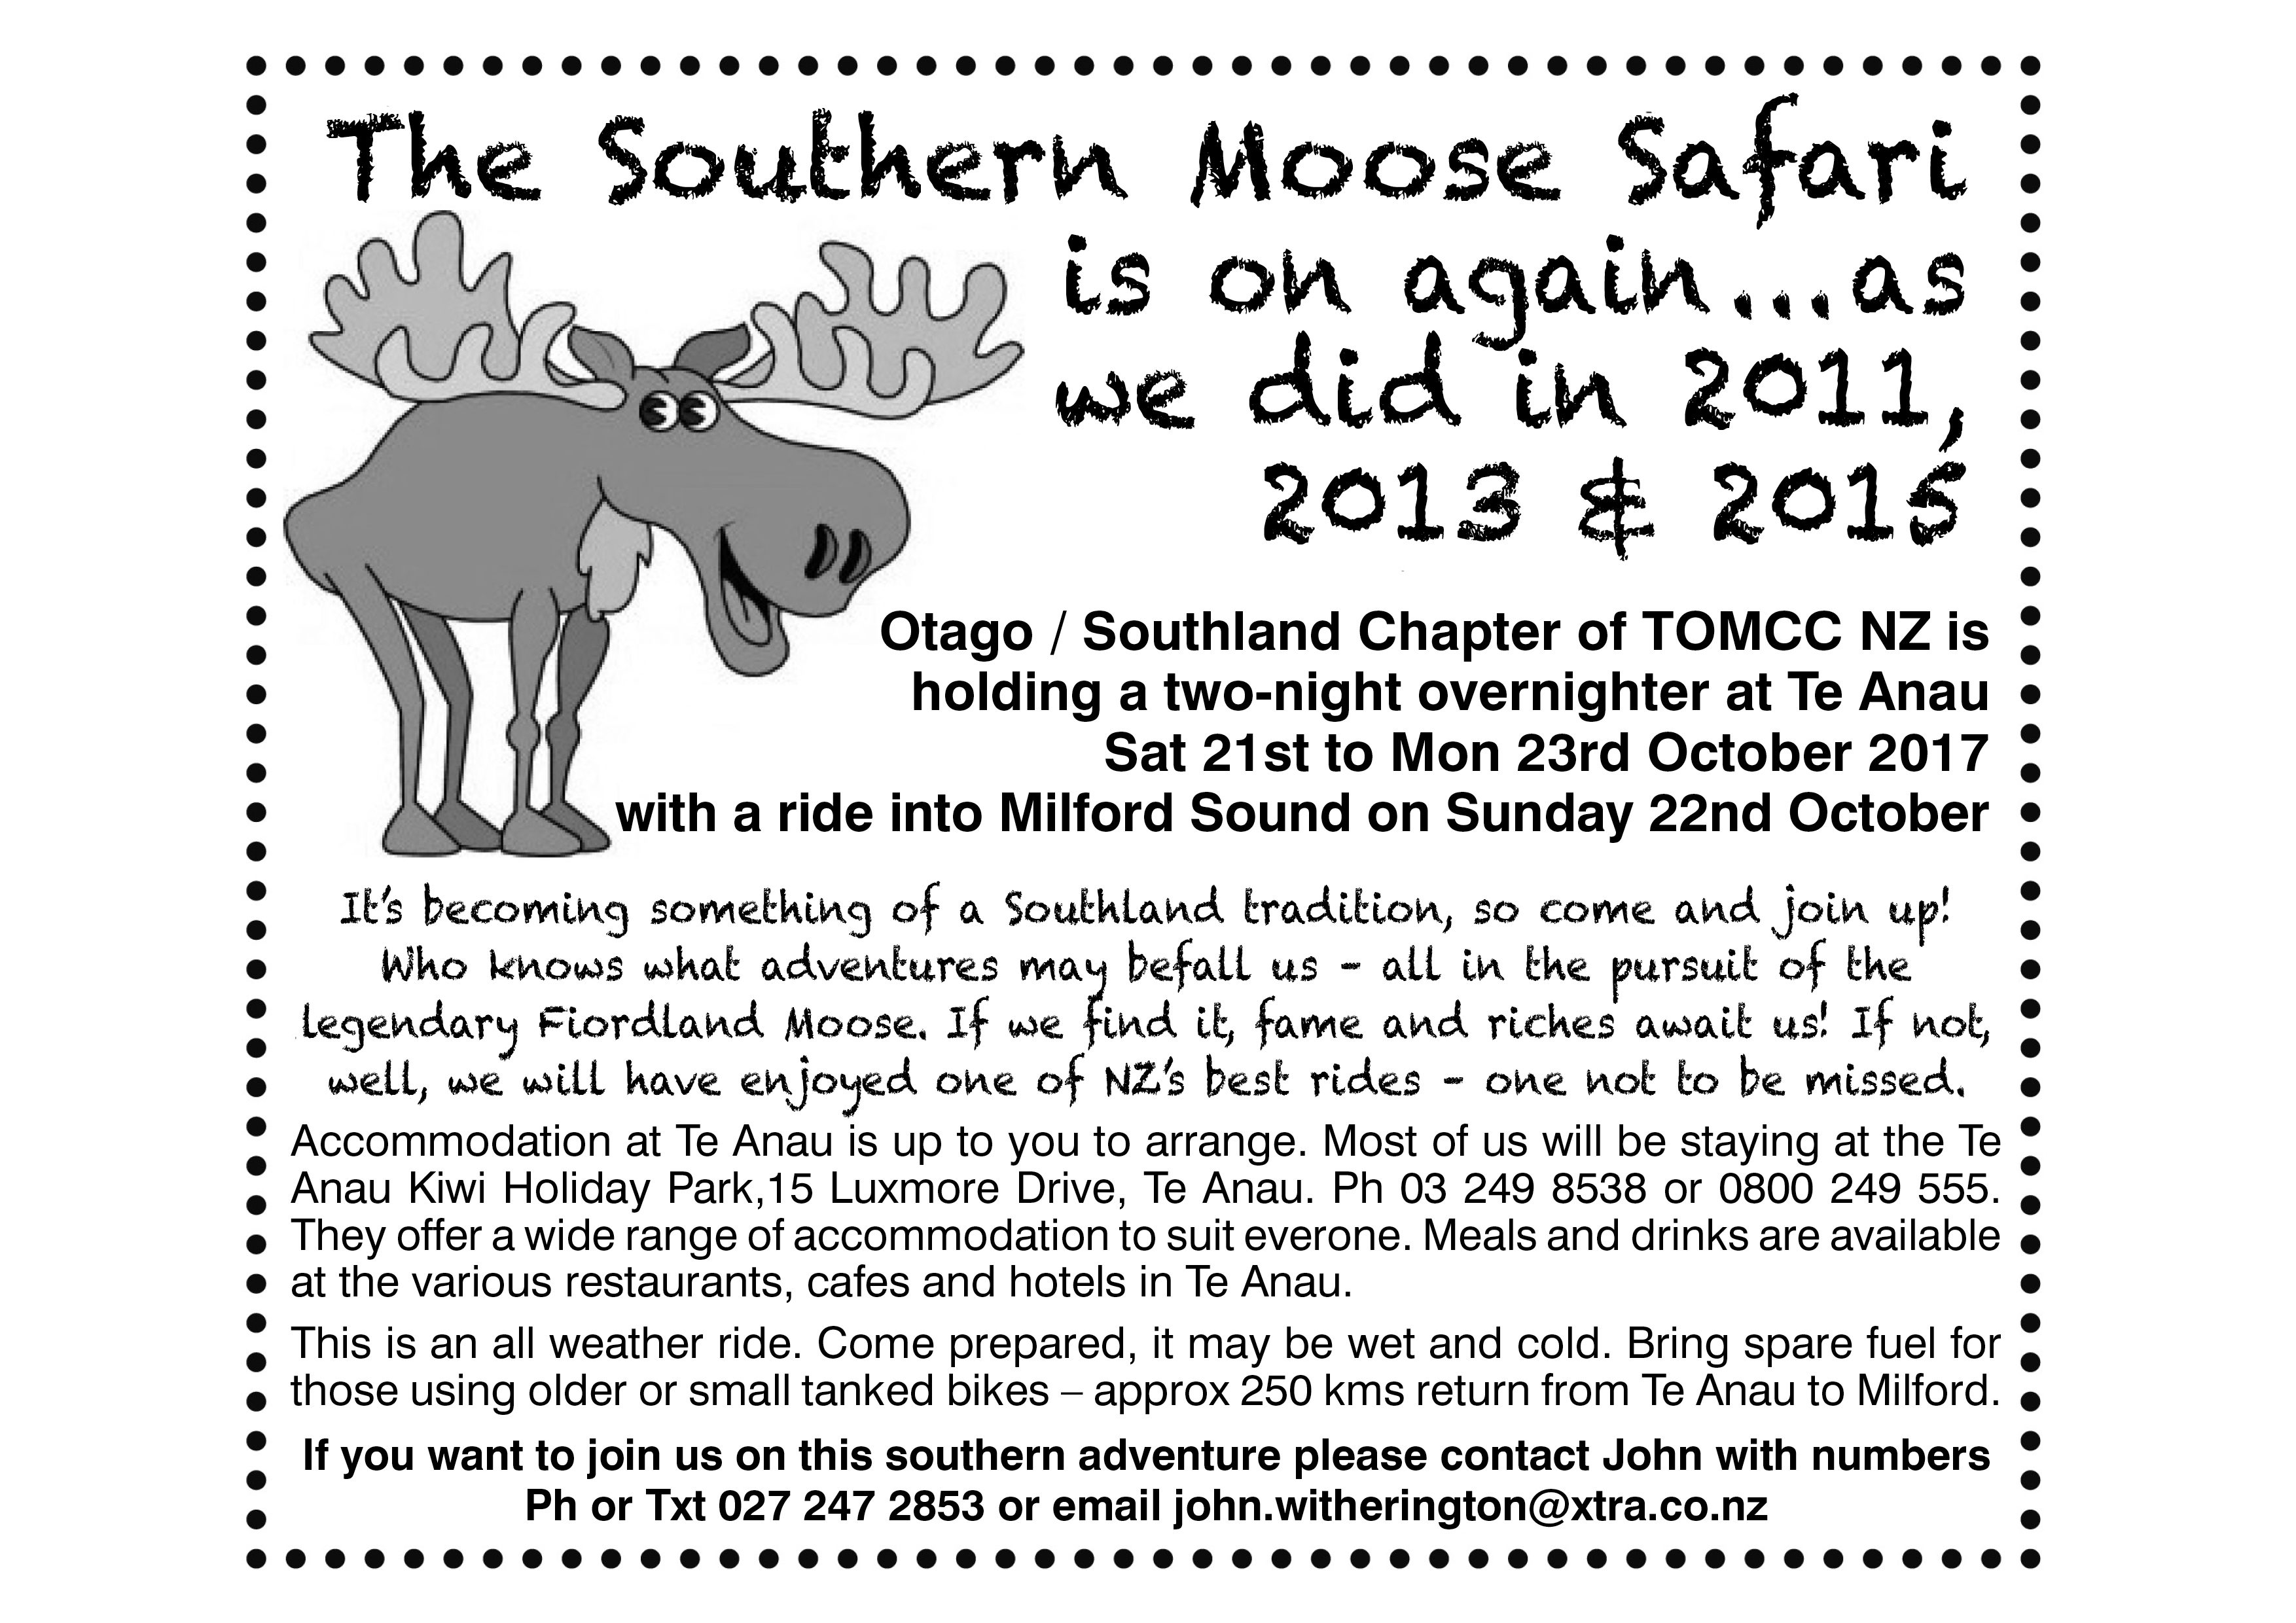 moose safari advert